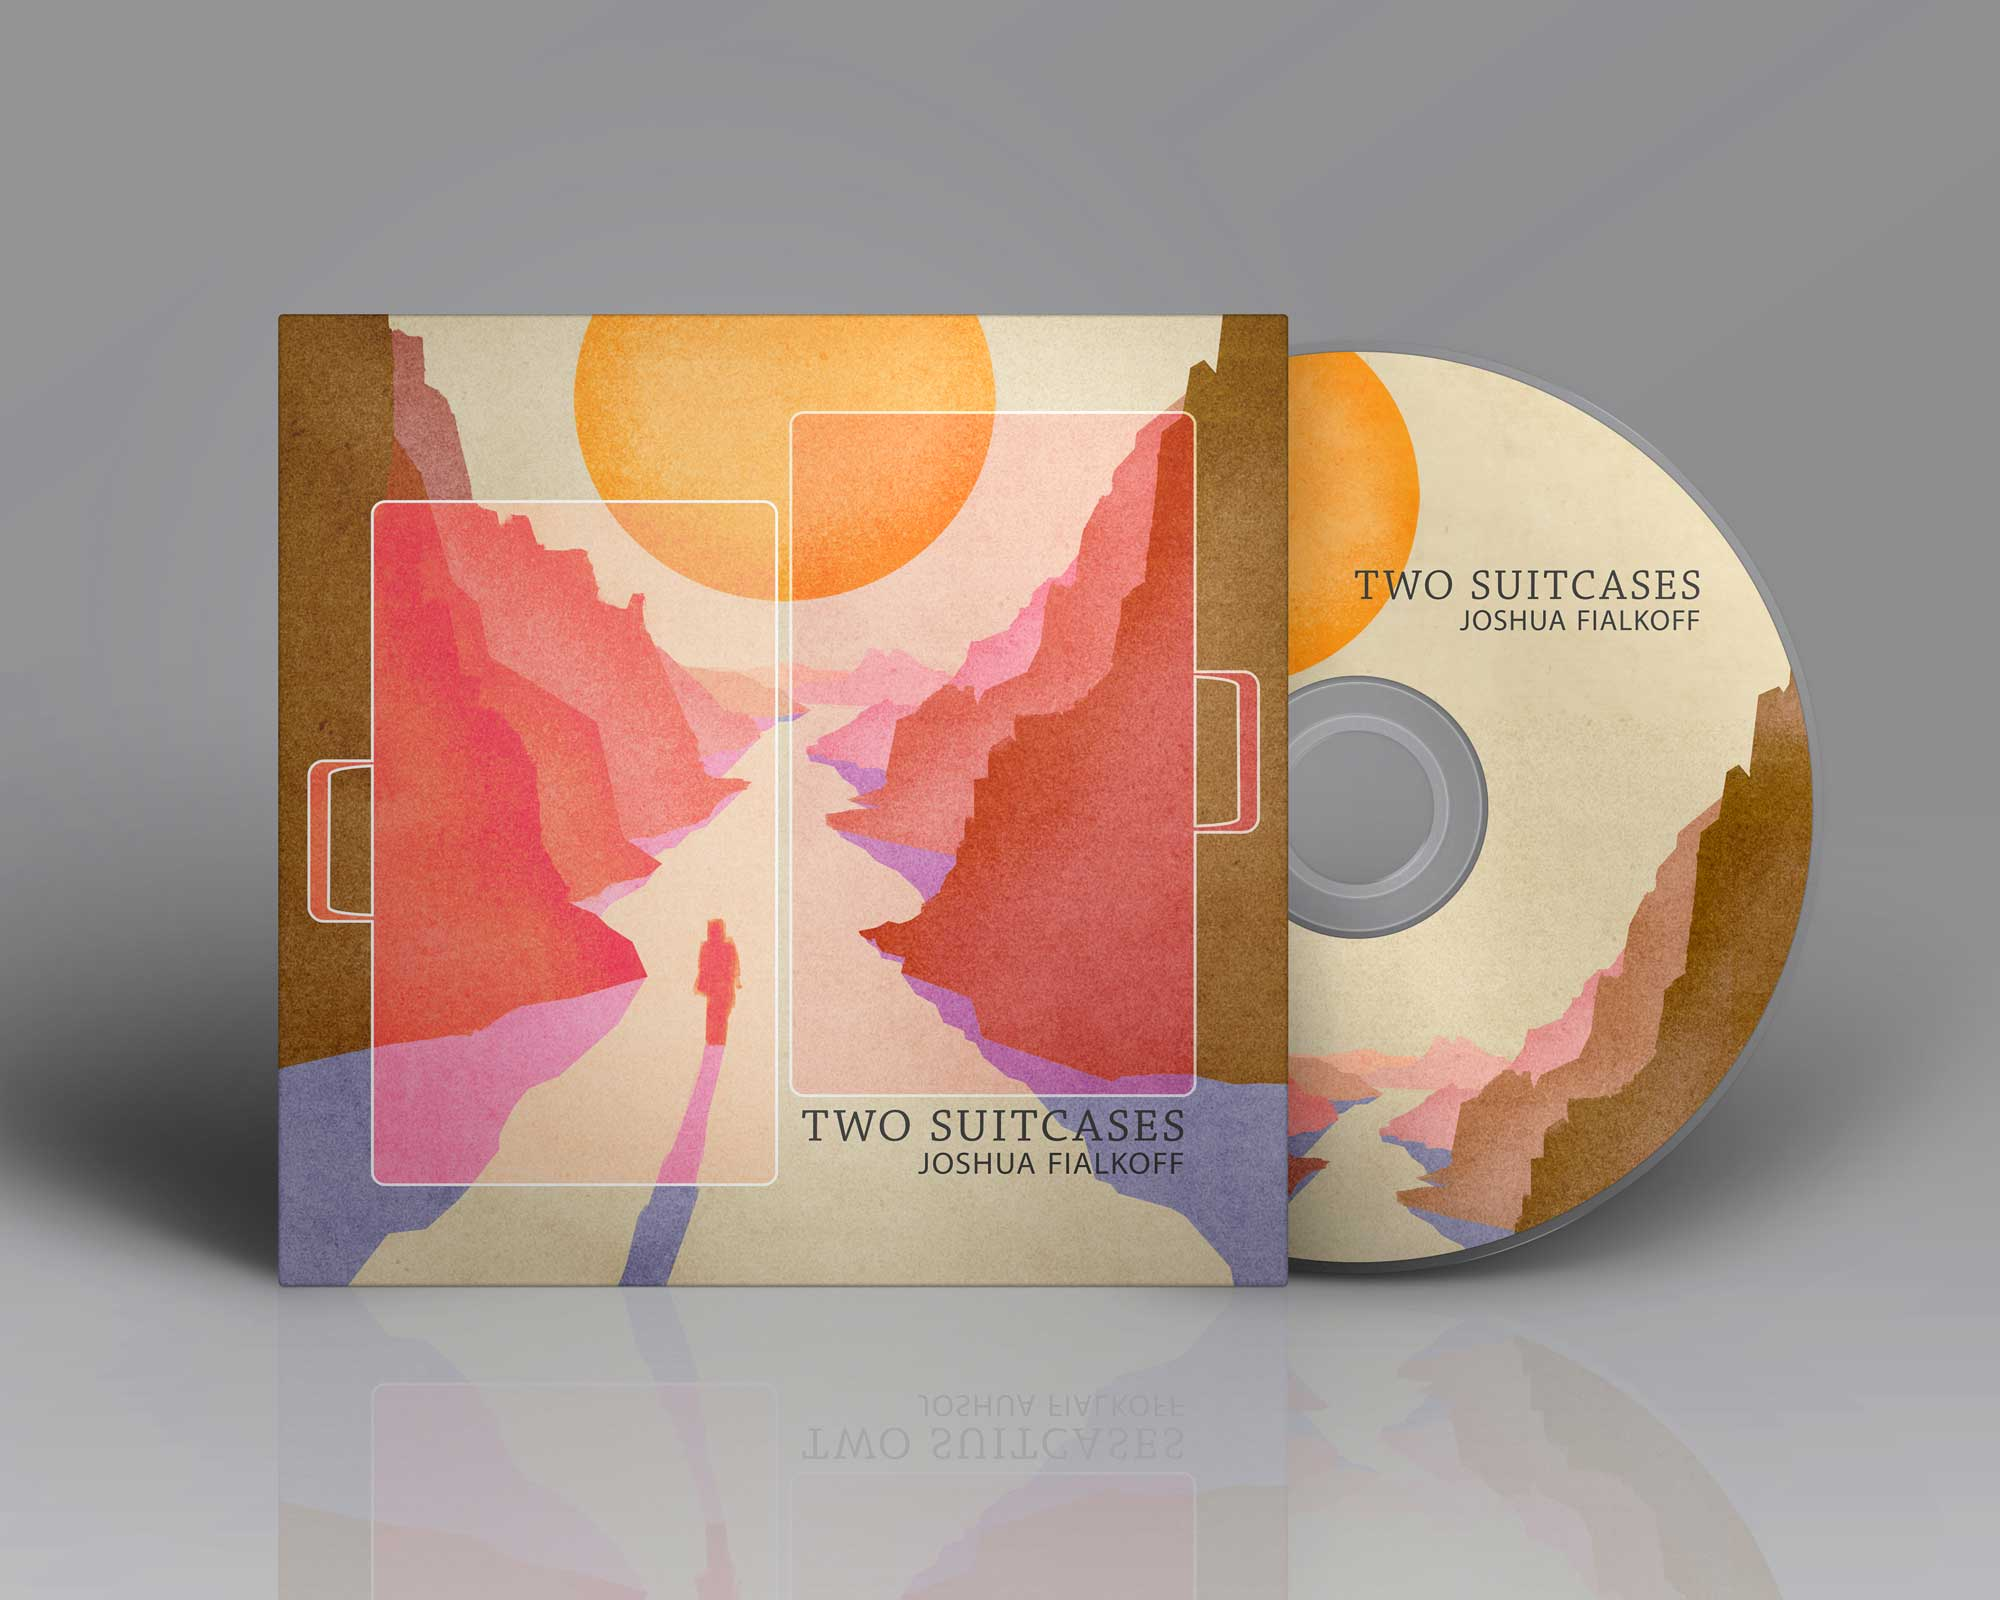 Final Album design for two suitcases album by josh fialkoff